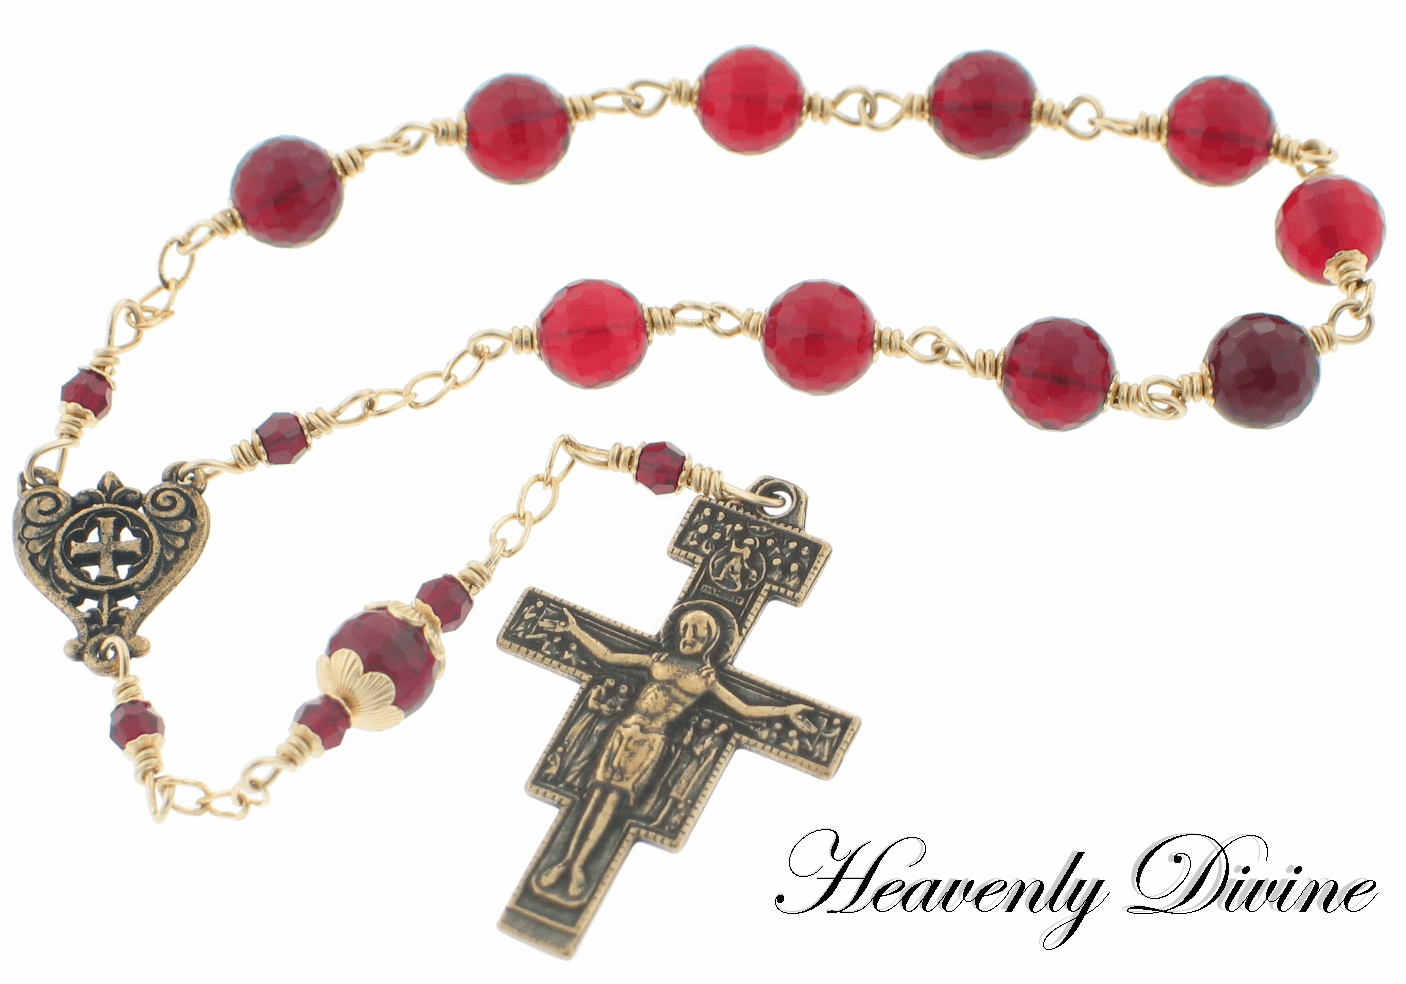 Handmade San Damiano One Decade Wire Wrapped Rosary by Heavenly Divine